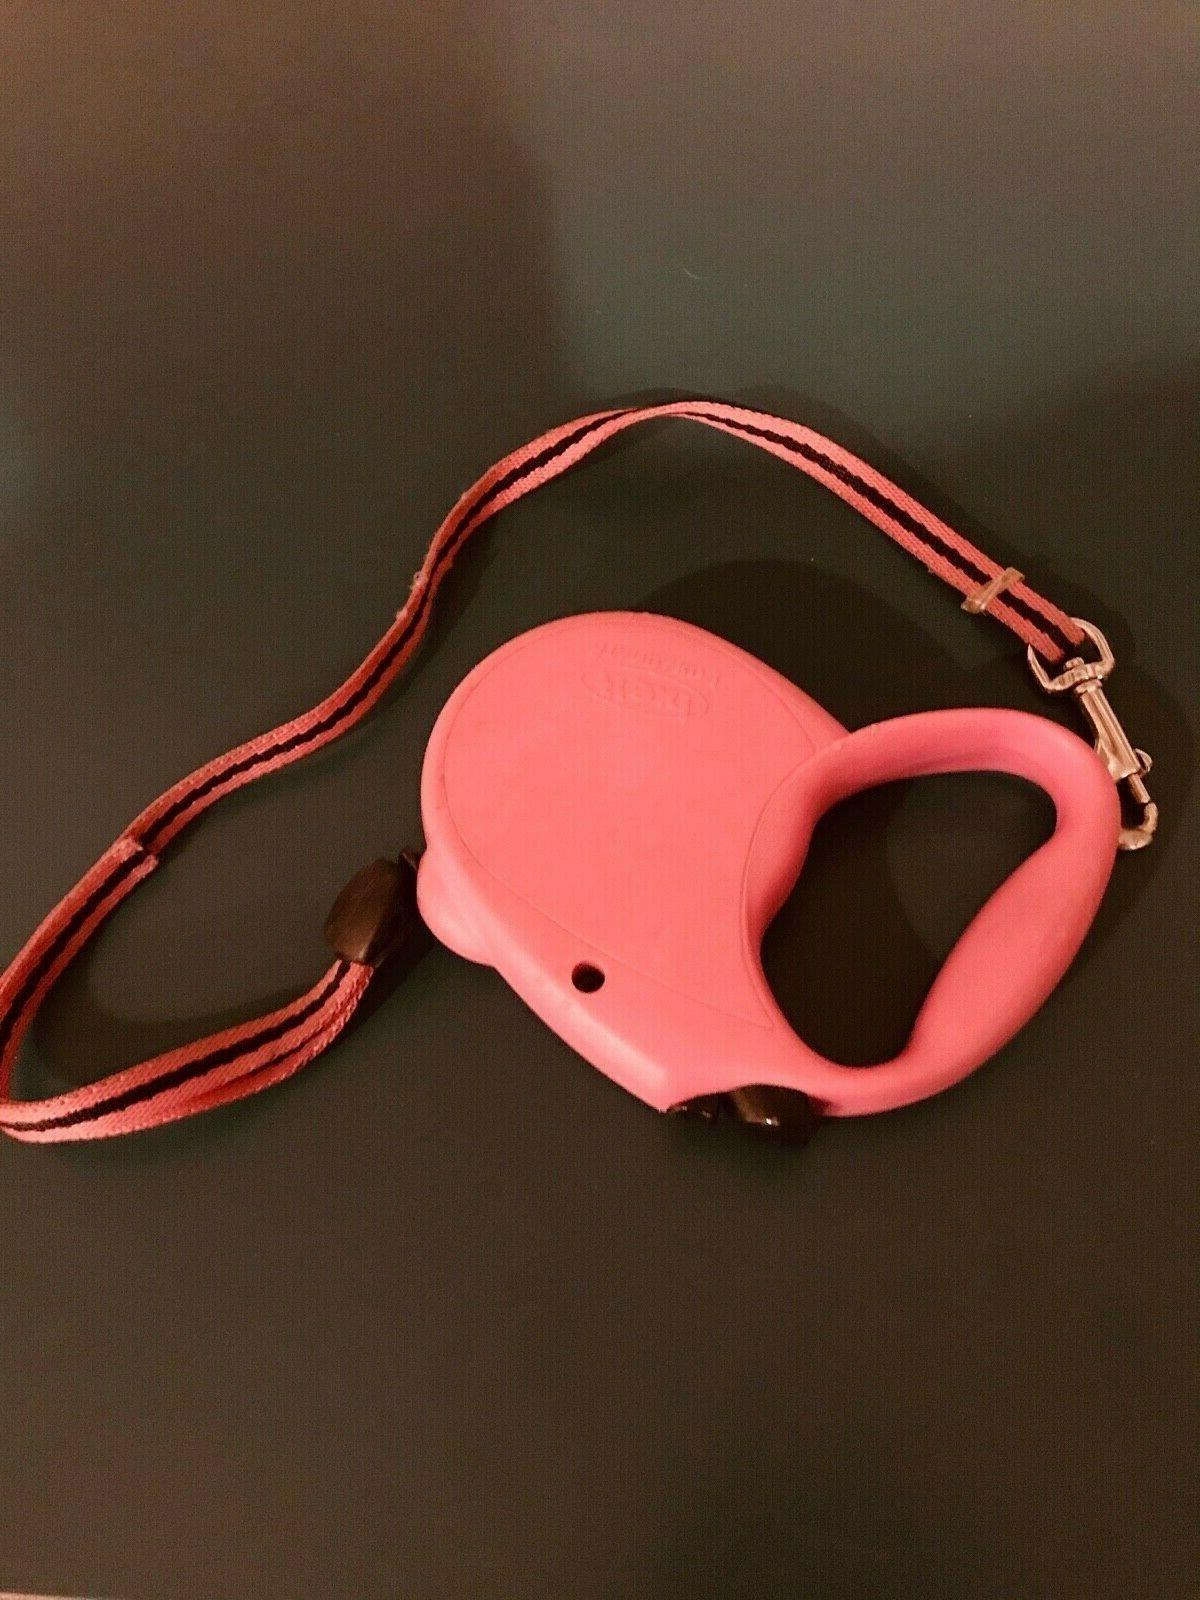 1 standard 1 retractable dog leash red